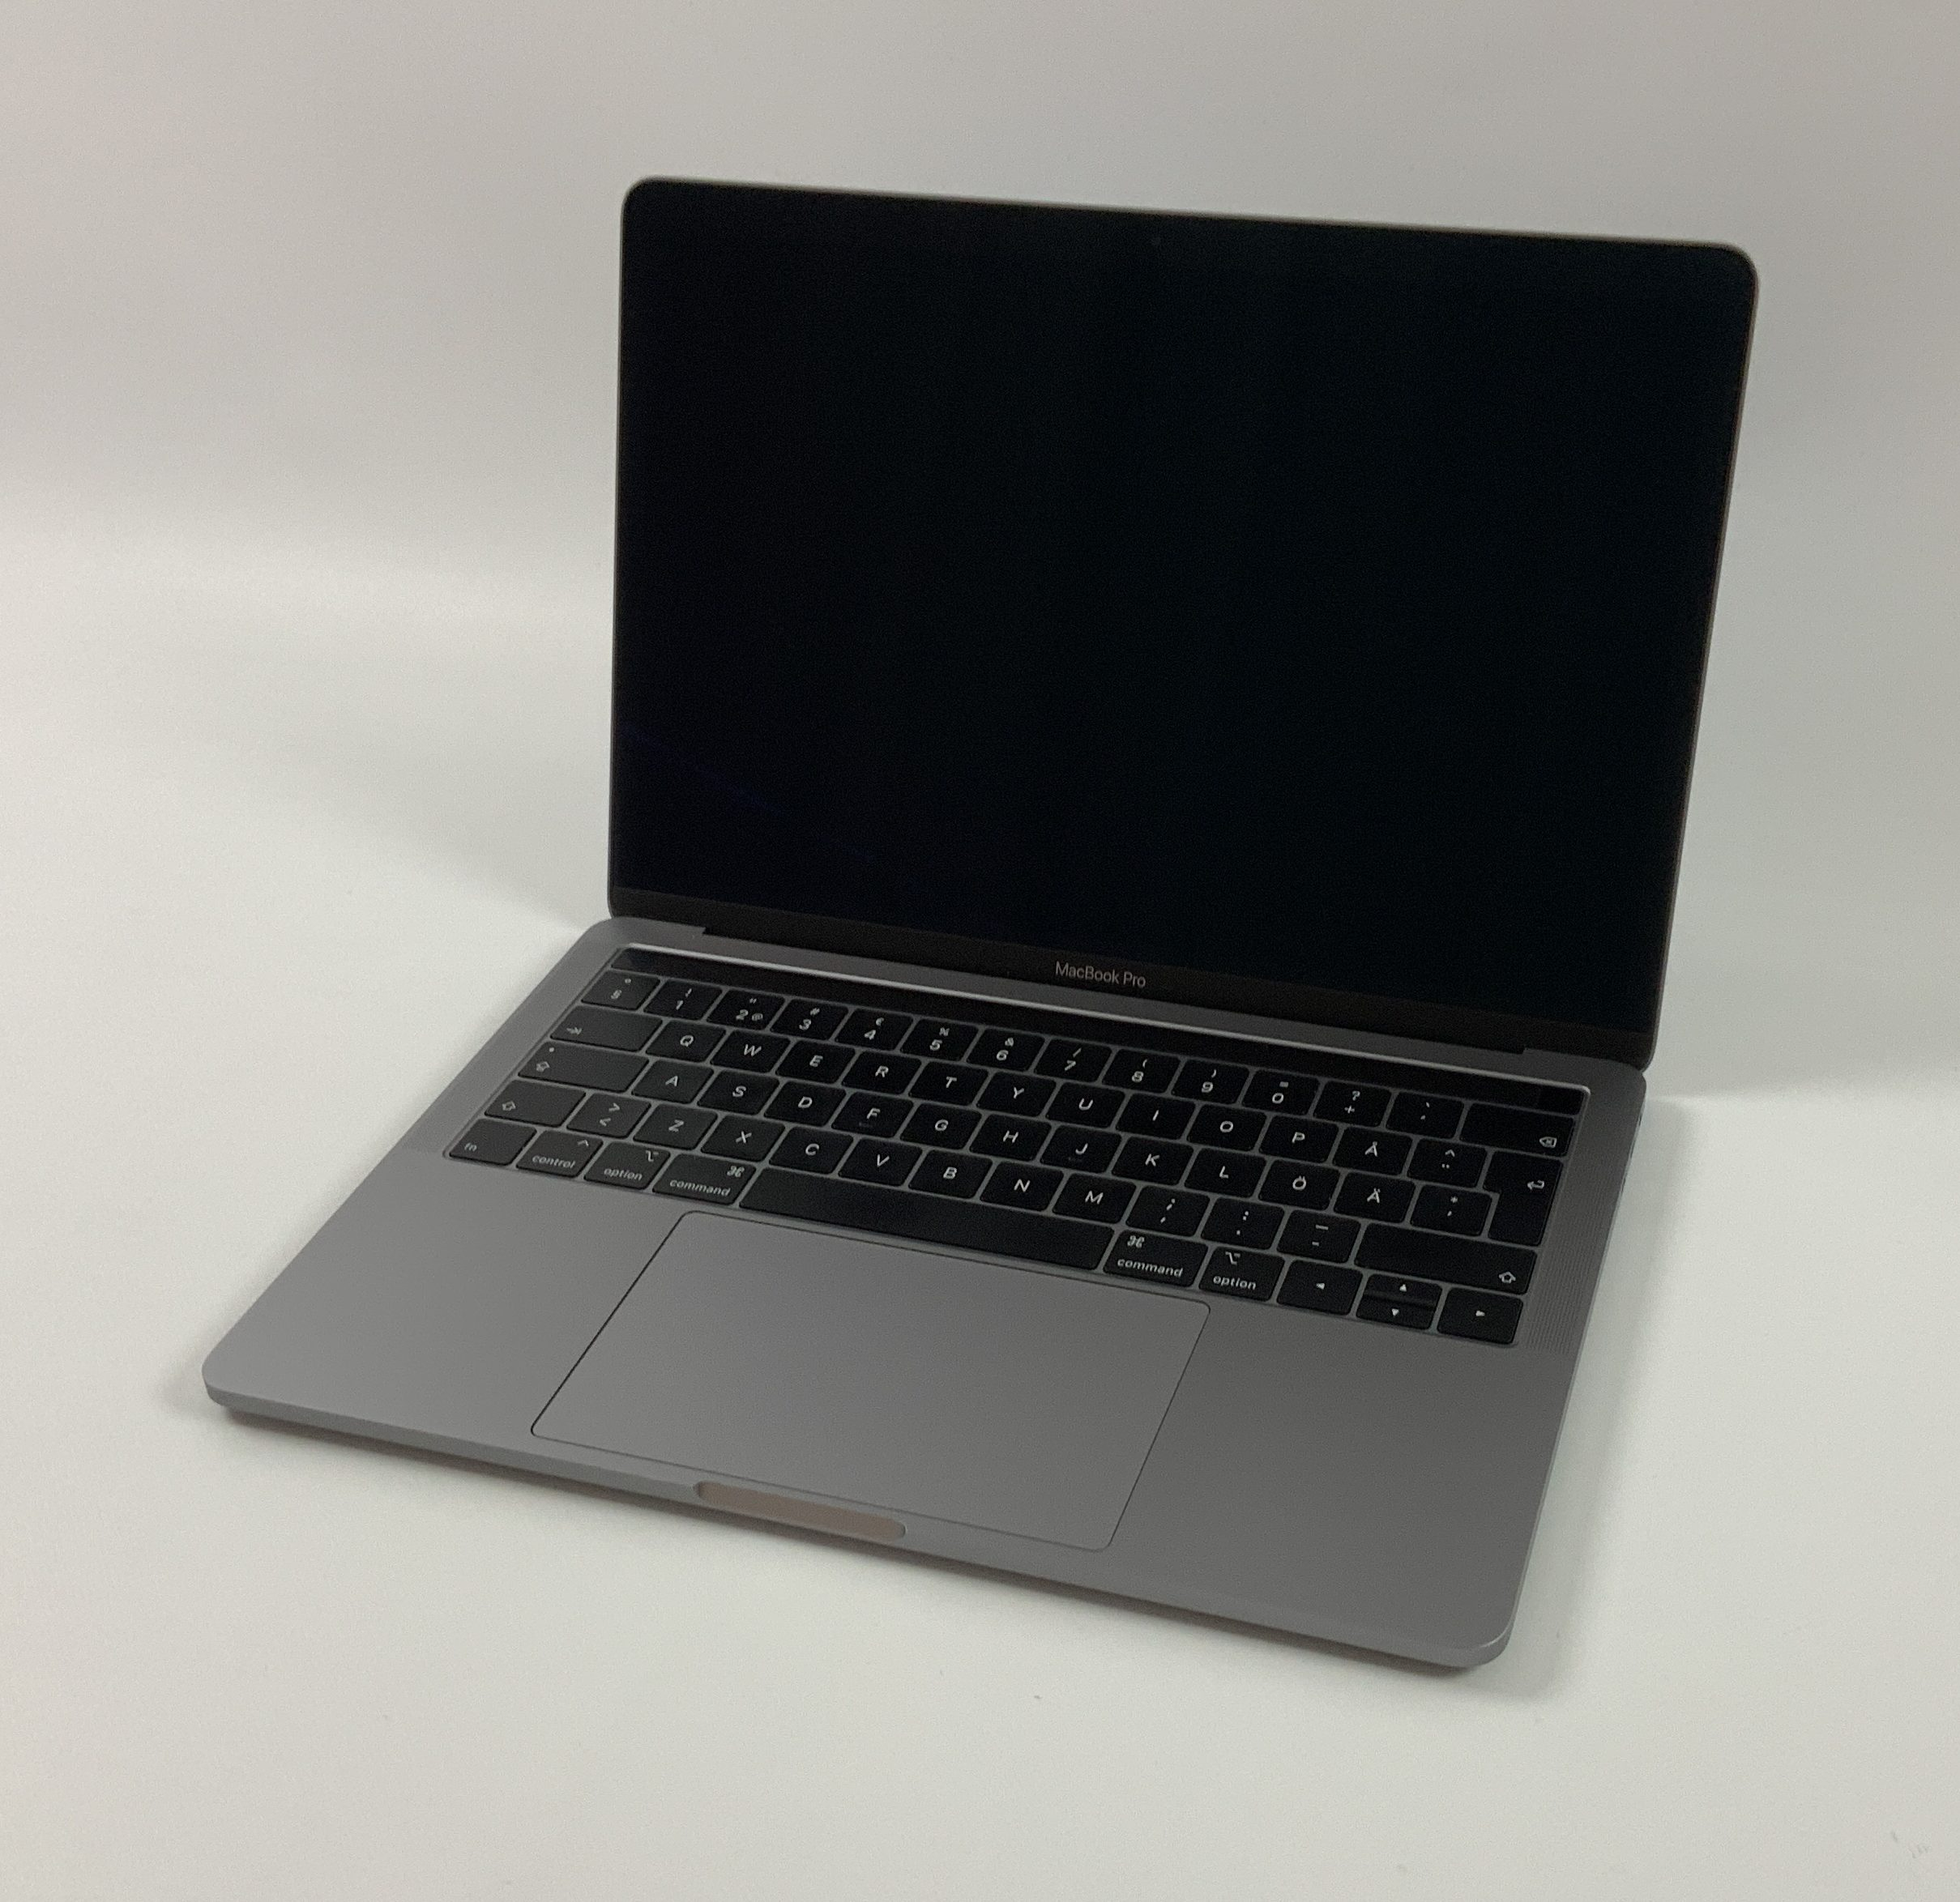 "MacBook Pro 13"" 4TBT Mid 2018 (Intel Quad-Core i5 2.3 GHz 8 GB RAM 256 GB SSD), Space Gray, Intel Quad-Core i5 2.3 GHz, 8 GB RAM, 256 GB SSD, obraz 1"